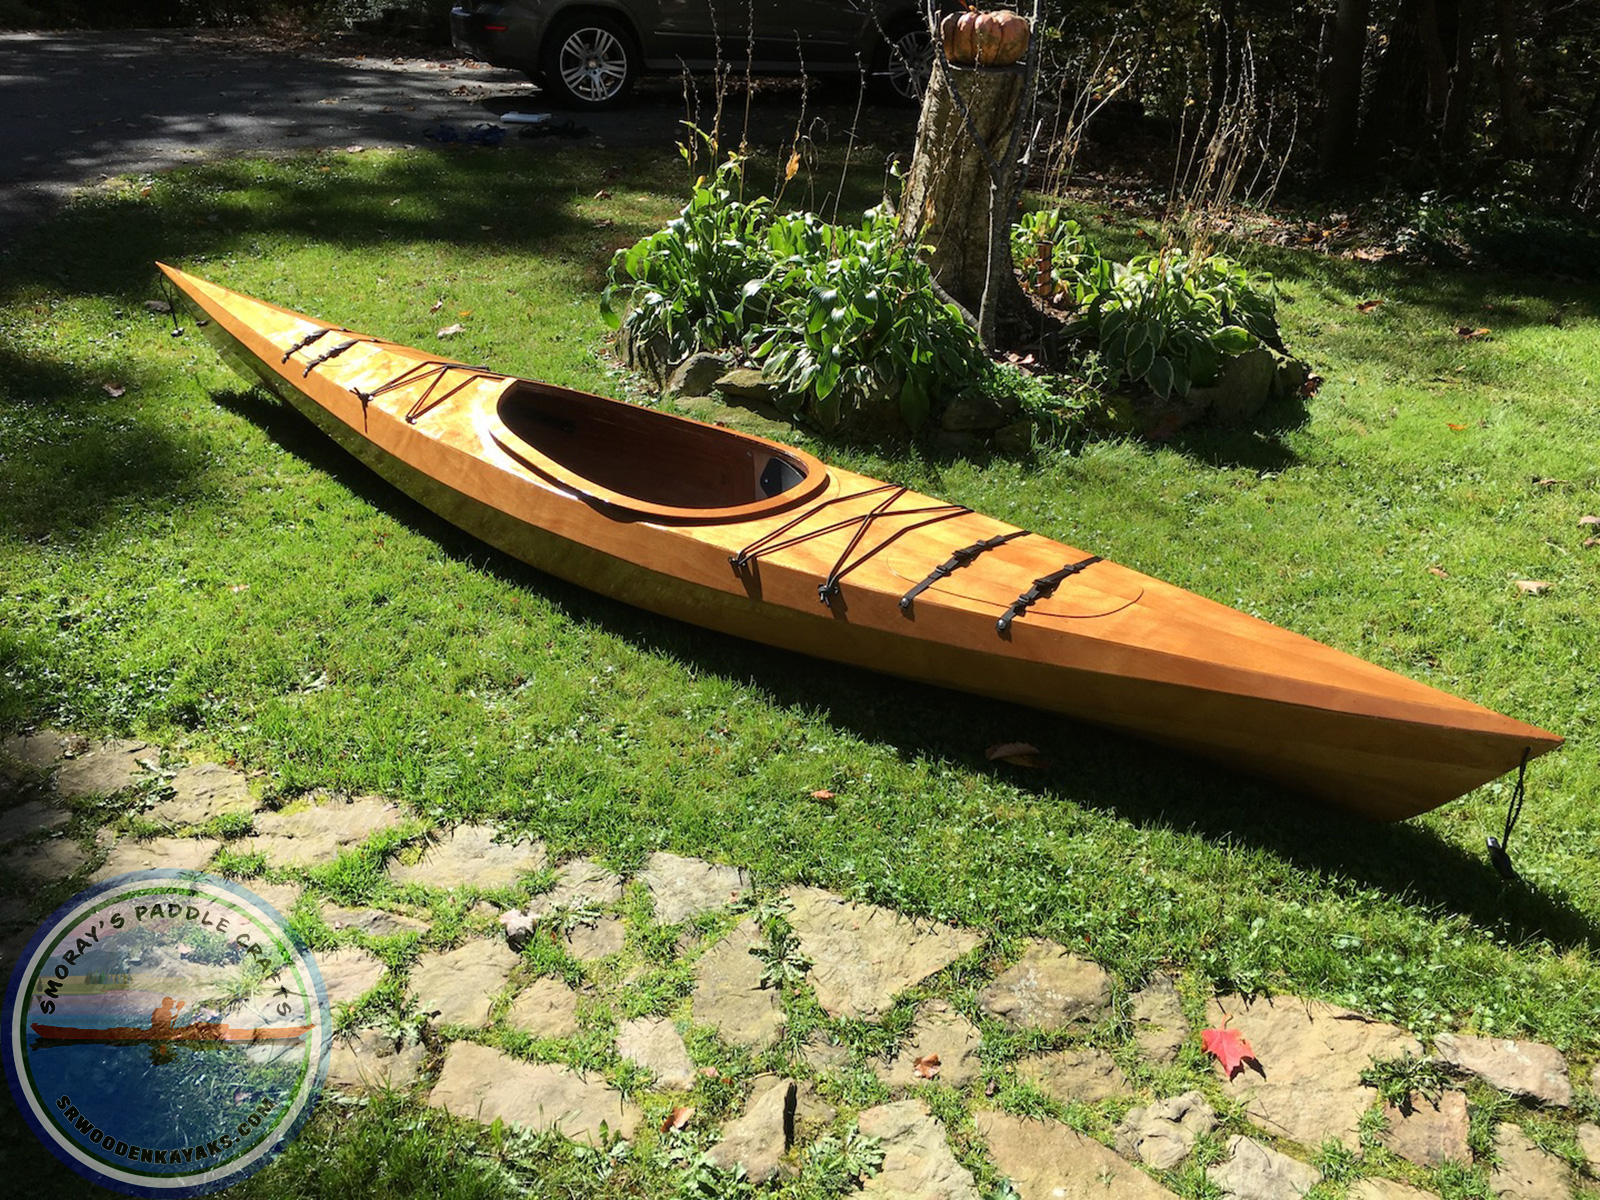 New and Used Wooden Kayaks, Boats, and Stand Up Paddle Boards (SUPs) for Sale